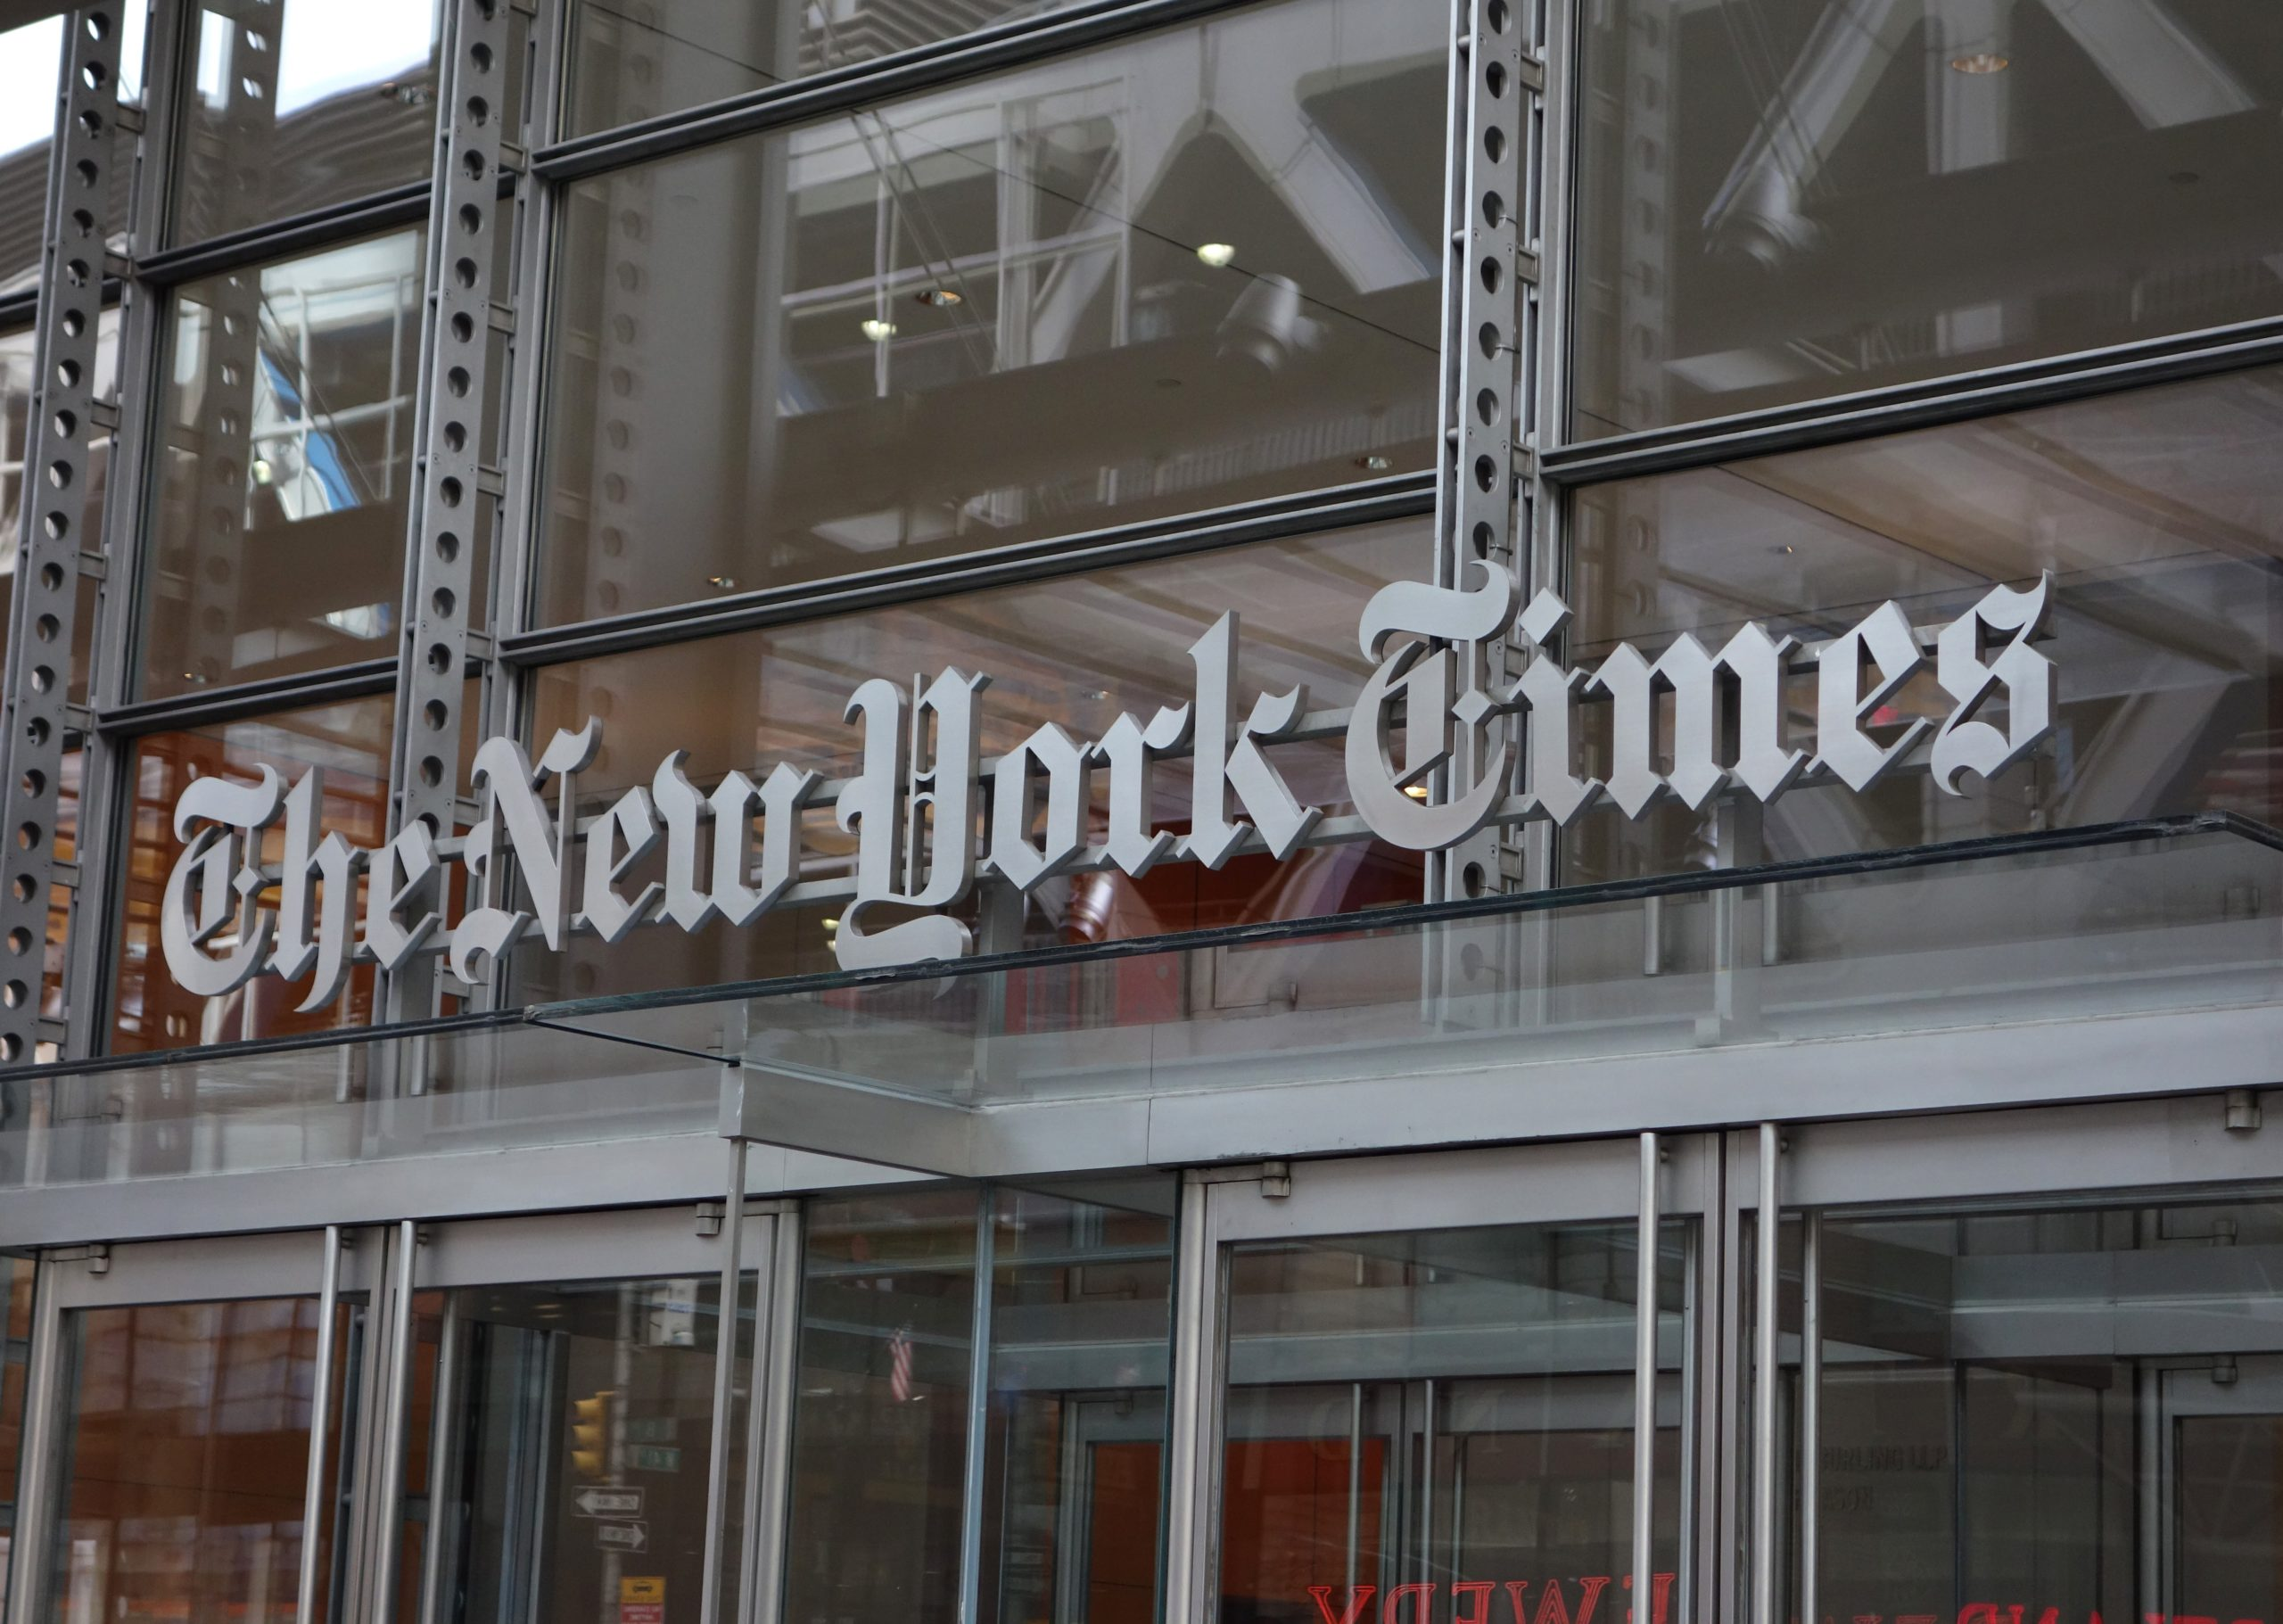 The New York Times building is pictured in 2016 in New York City. (Don Emmert/AFP via Getty Images)